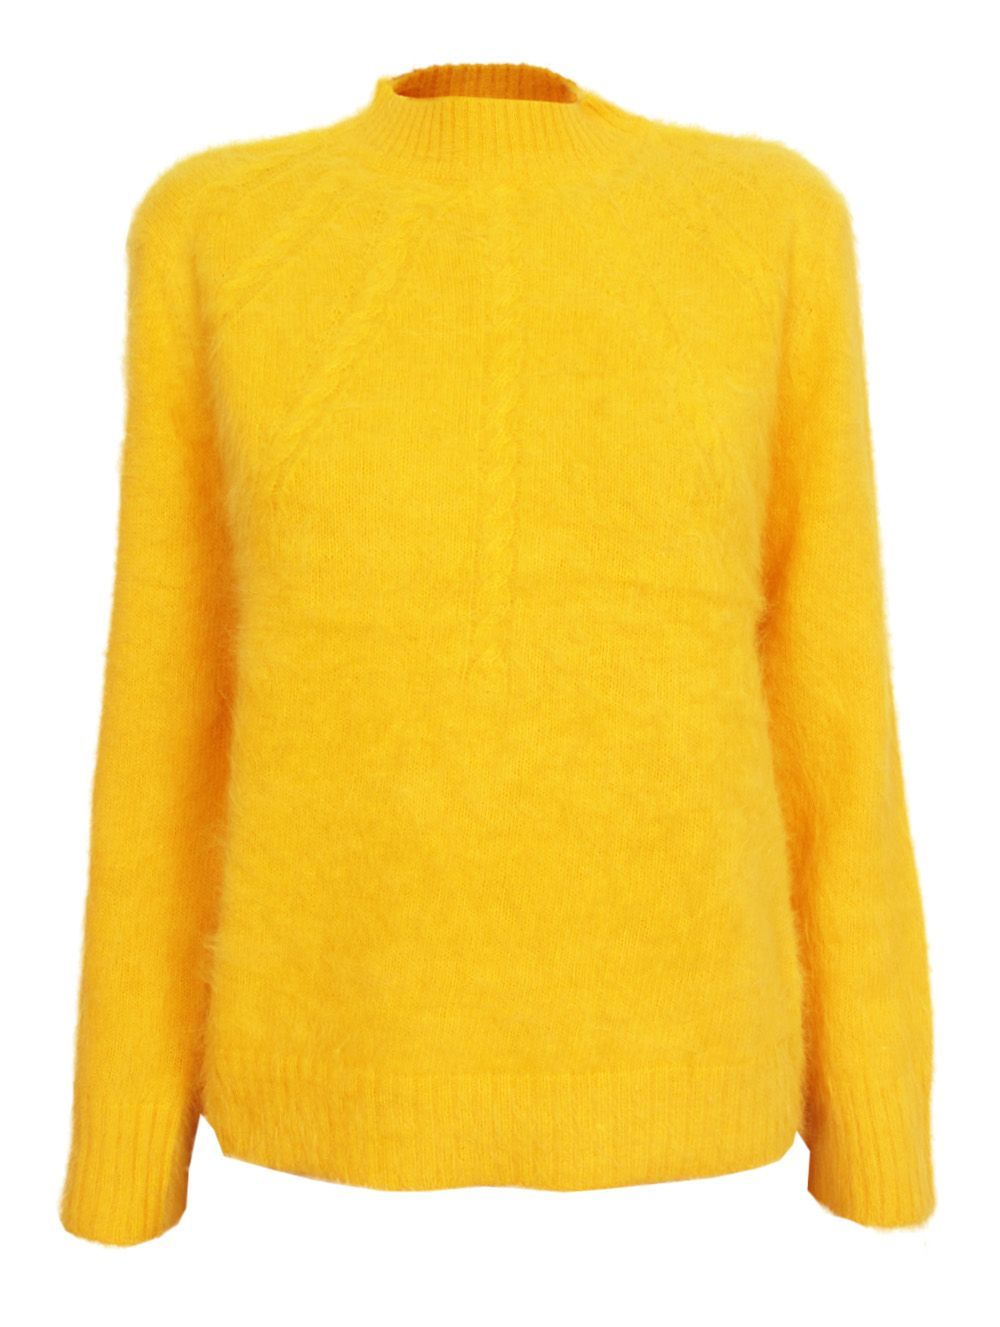 Karen Walker Sunray Cableknit Sweater - I love the cheery yellow ...